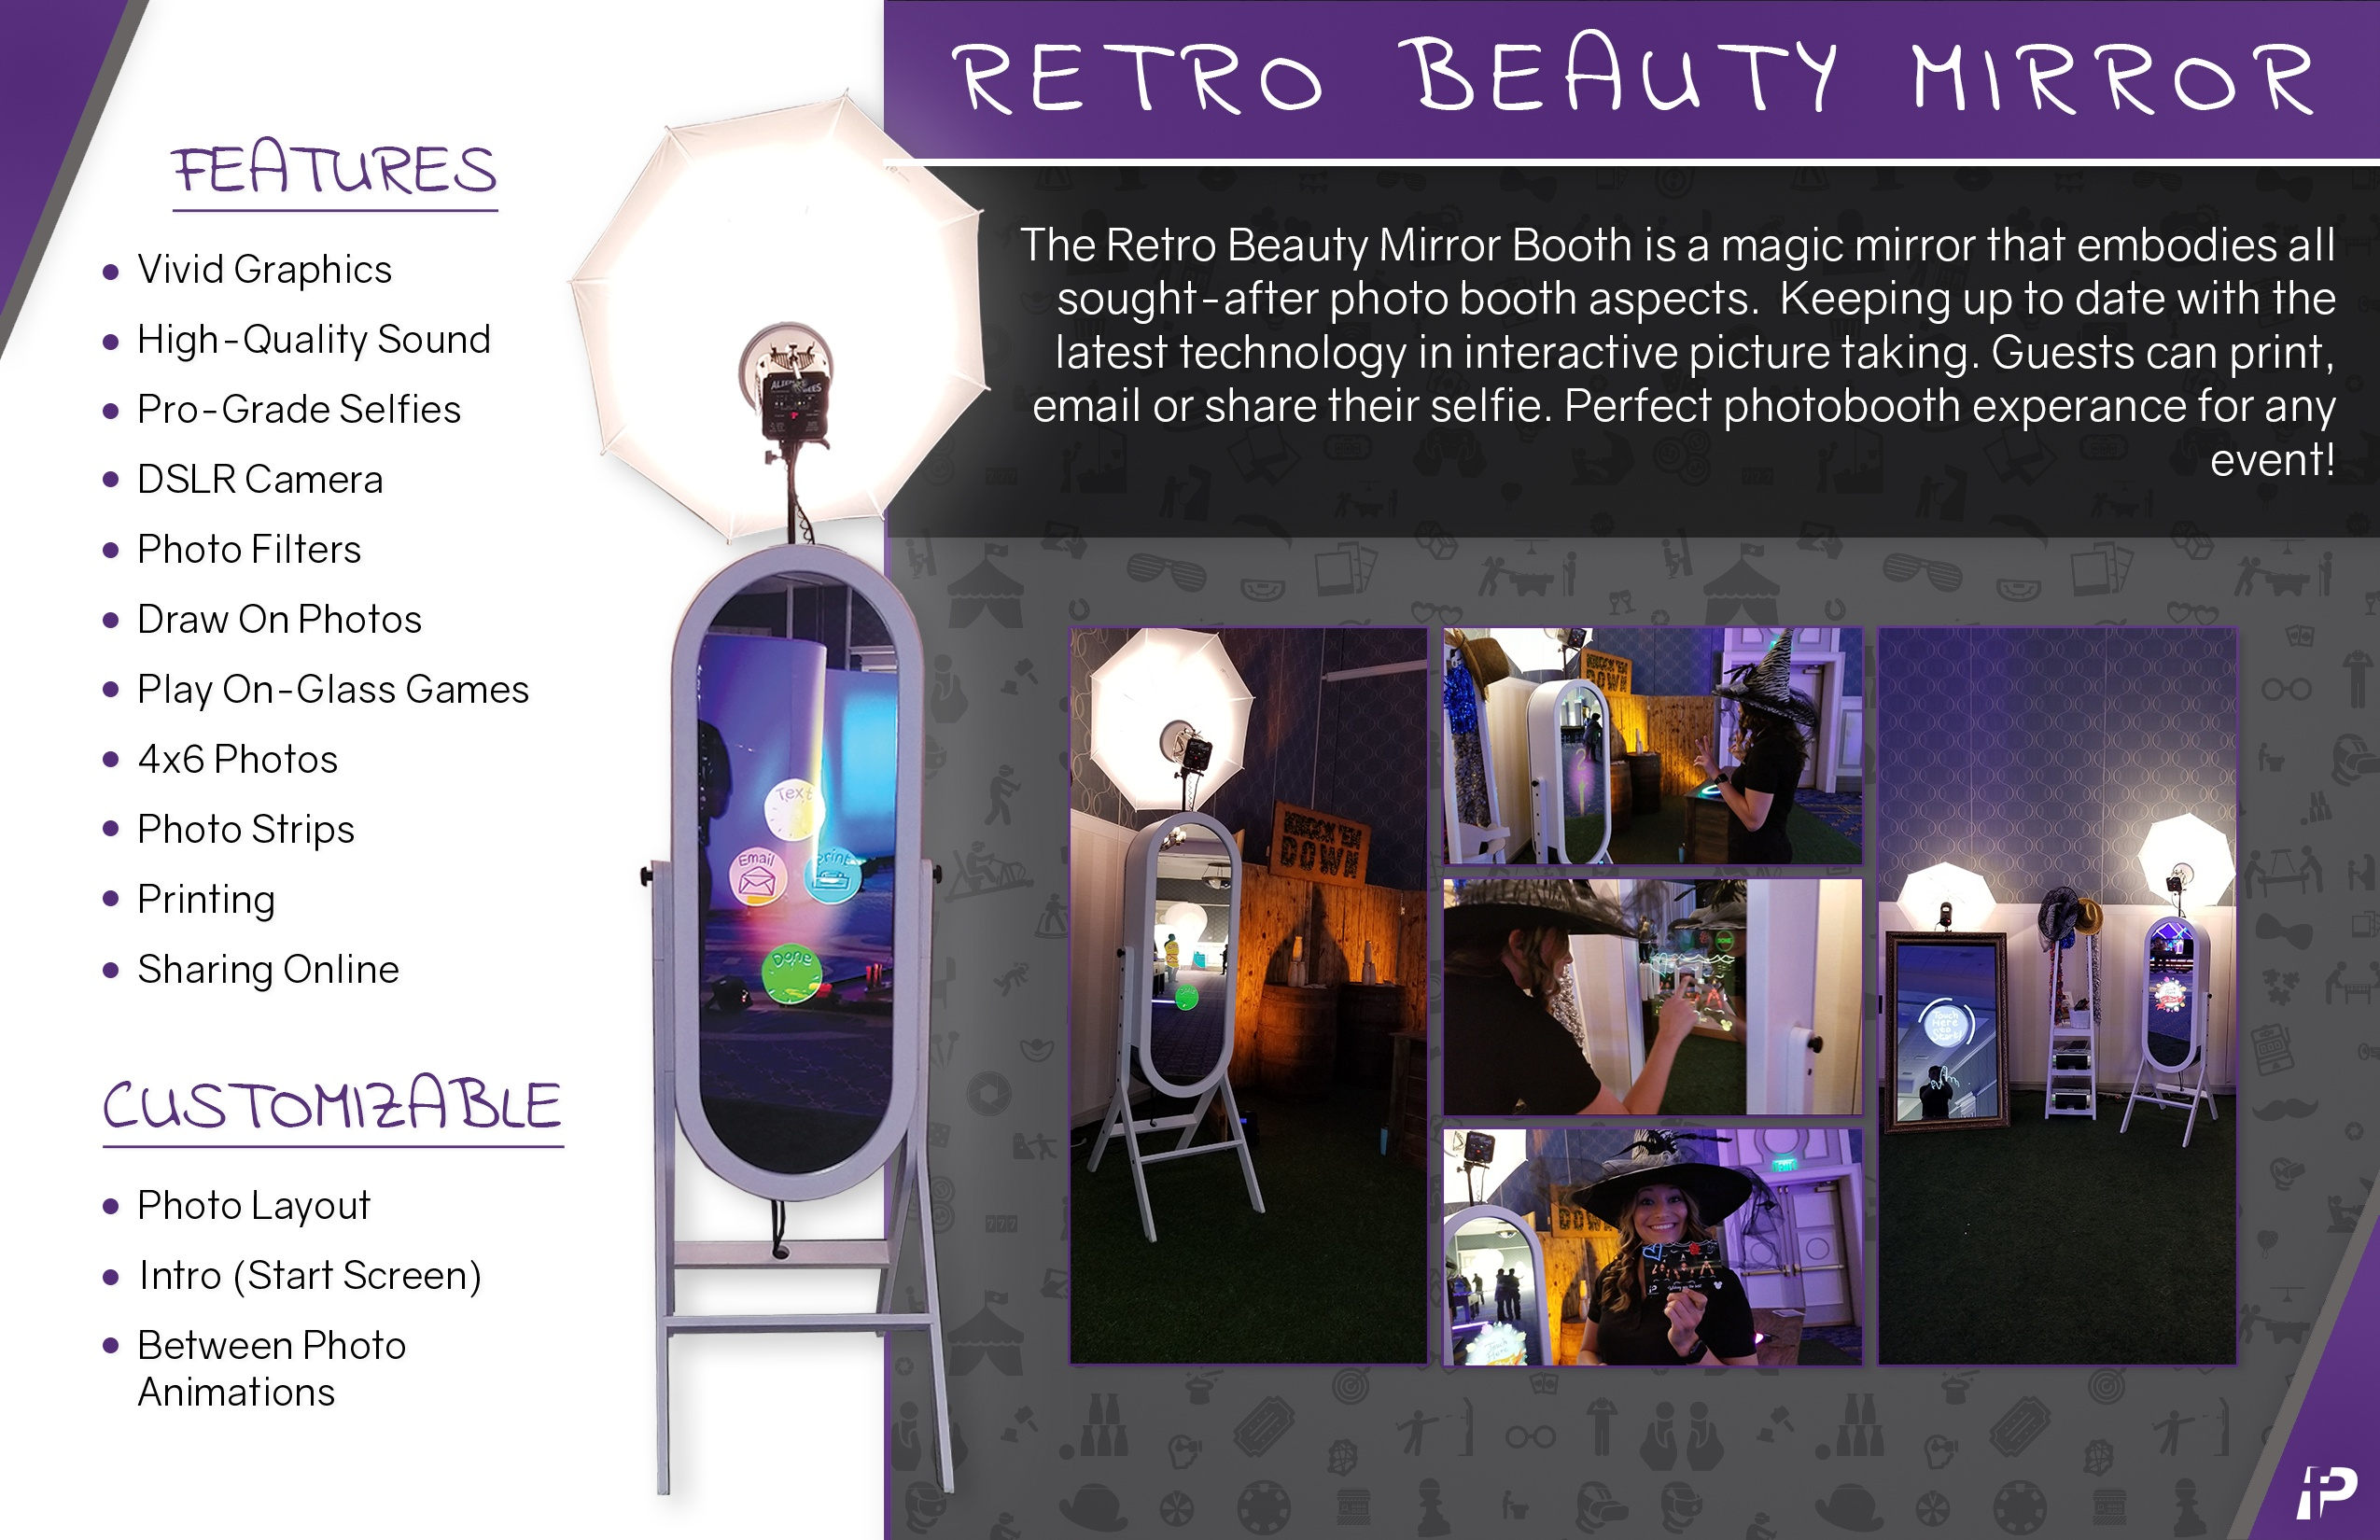 Mirror Me Retro Beauty: Selfie Booth - Fun Planners